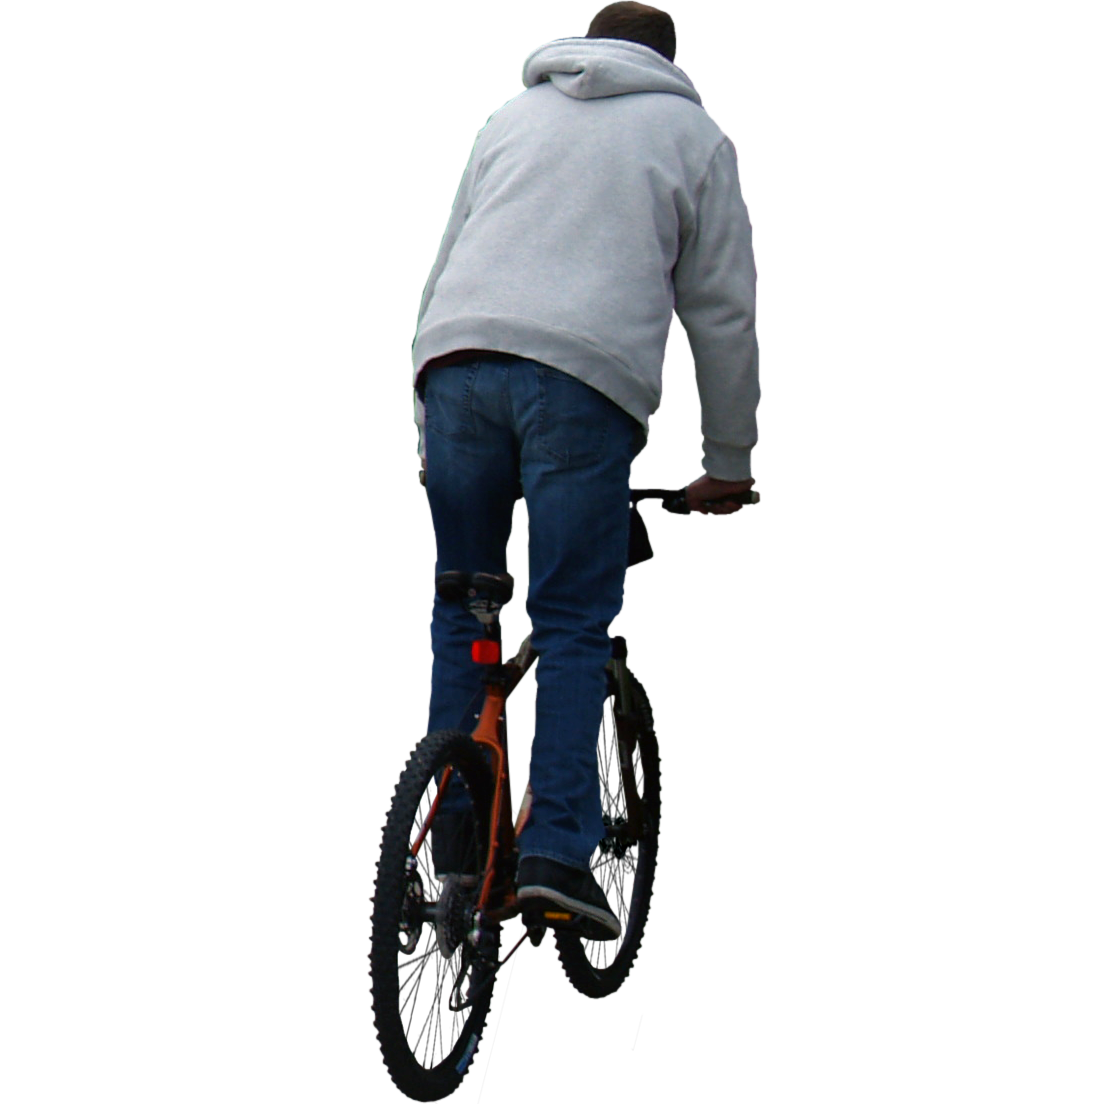 Bike rider png. Riding away photoshop library